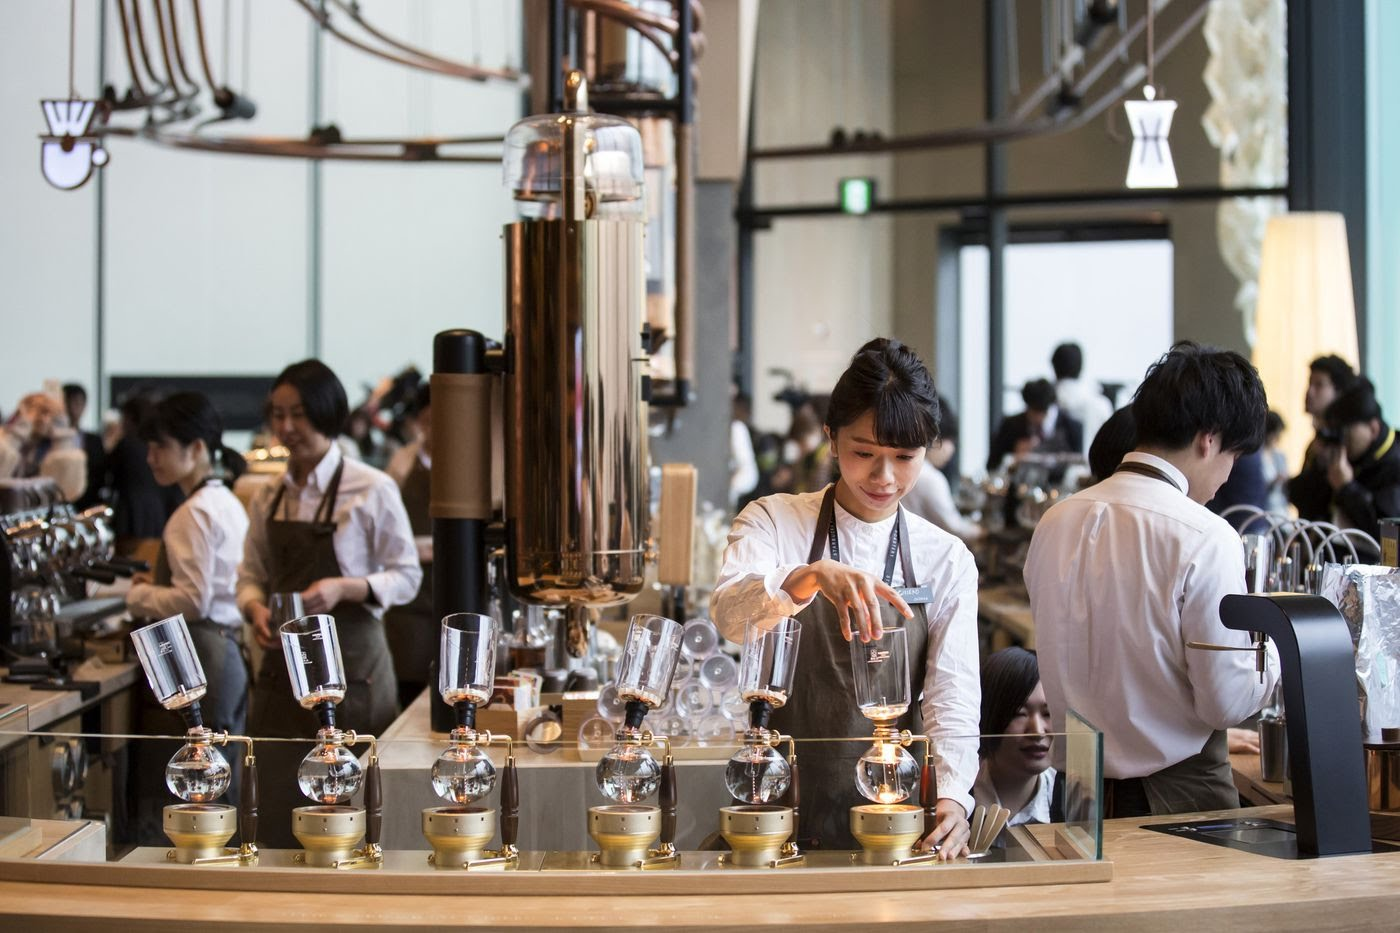 Baristas prepare coffee drinks Feb. 27, 2019, during a preview of the Starbucks Reserve Roastery in Tokyo.